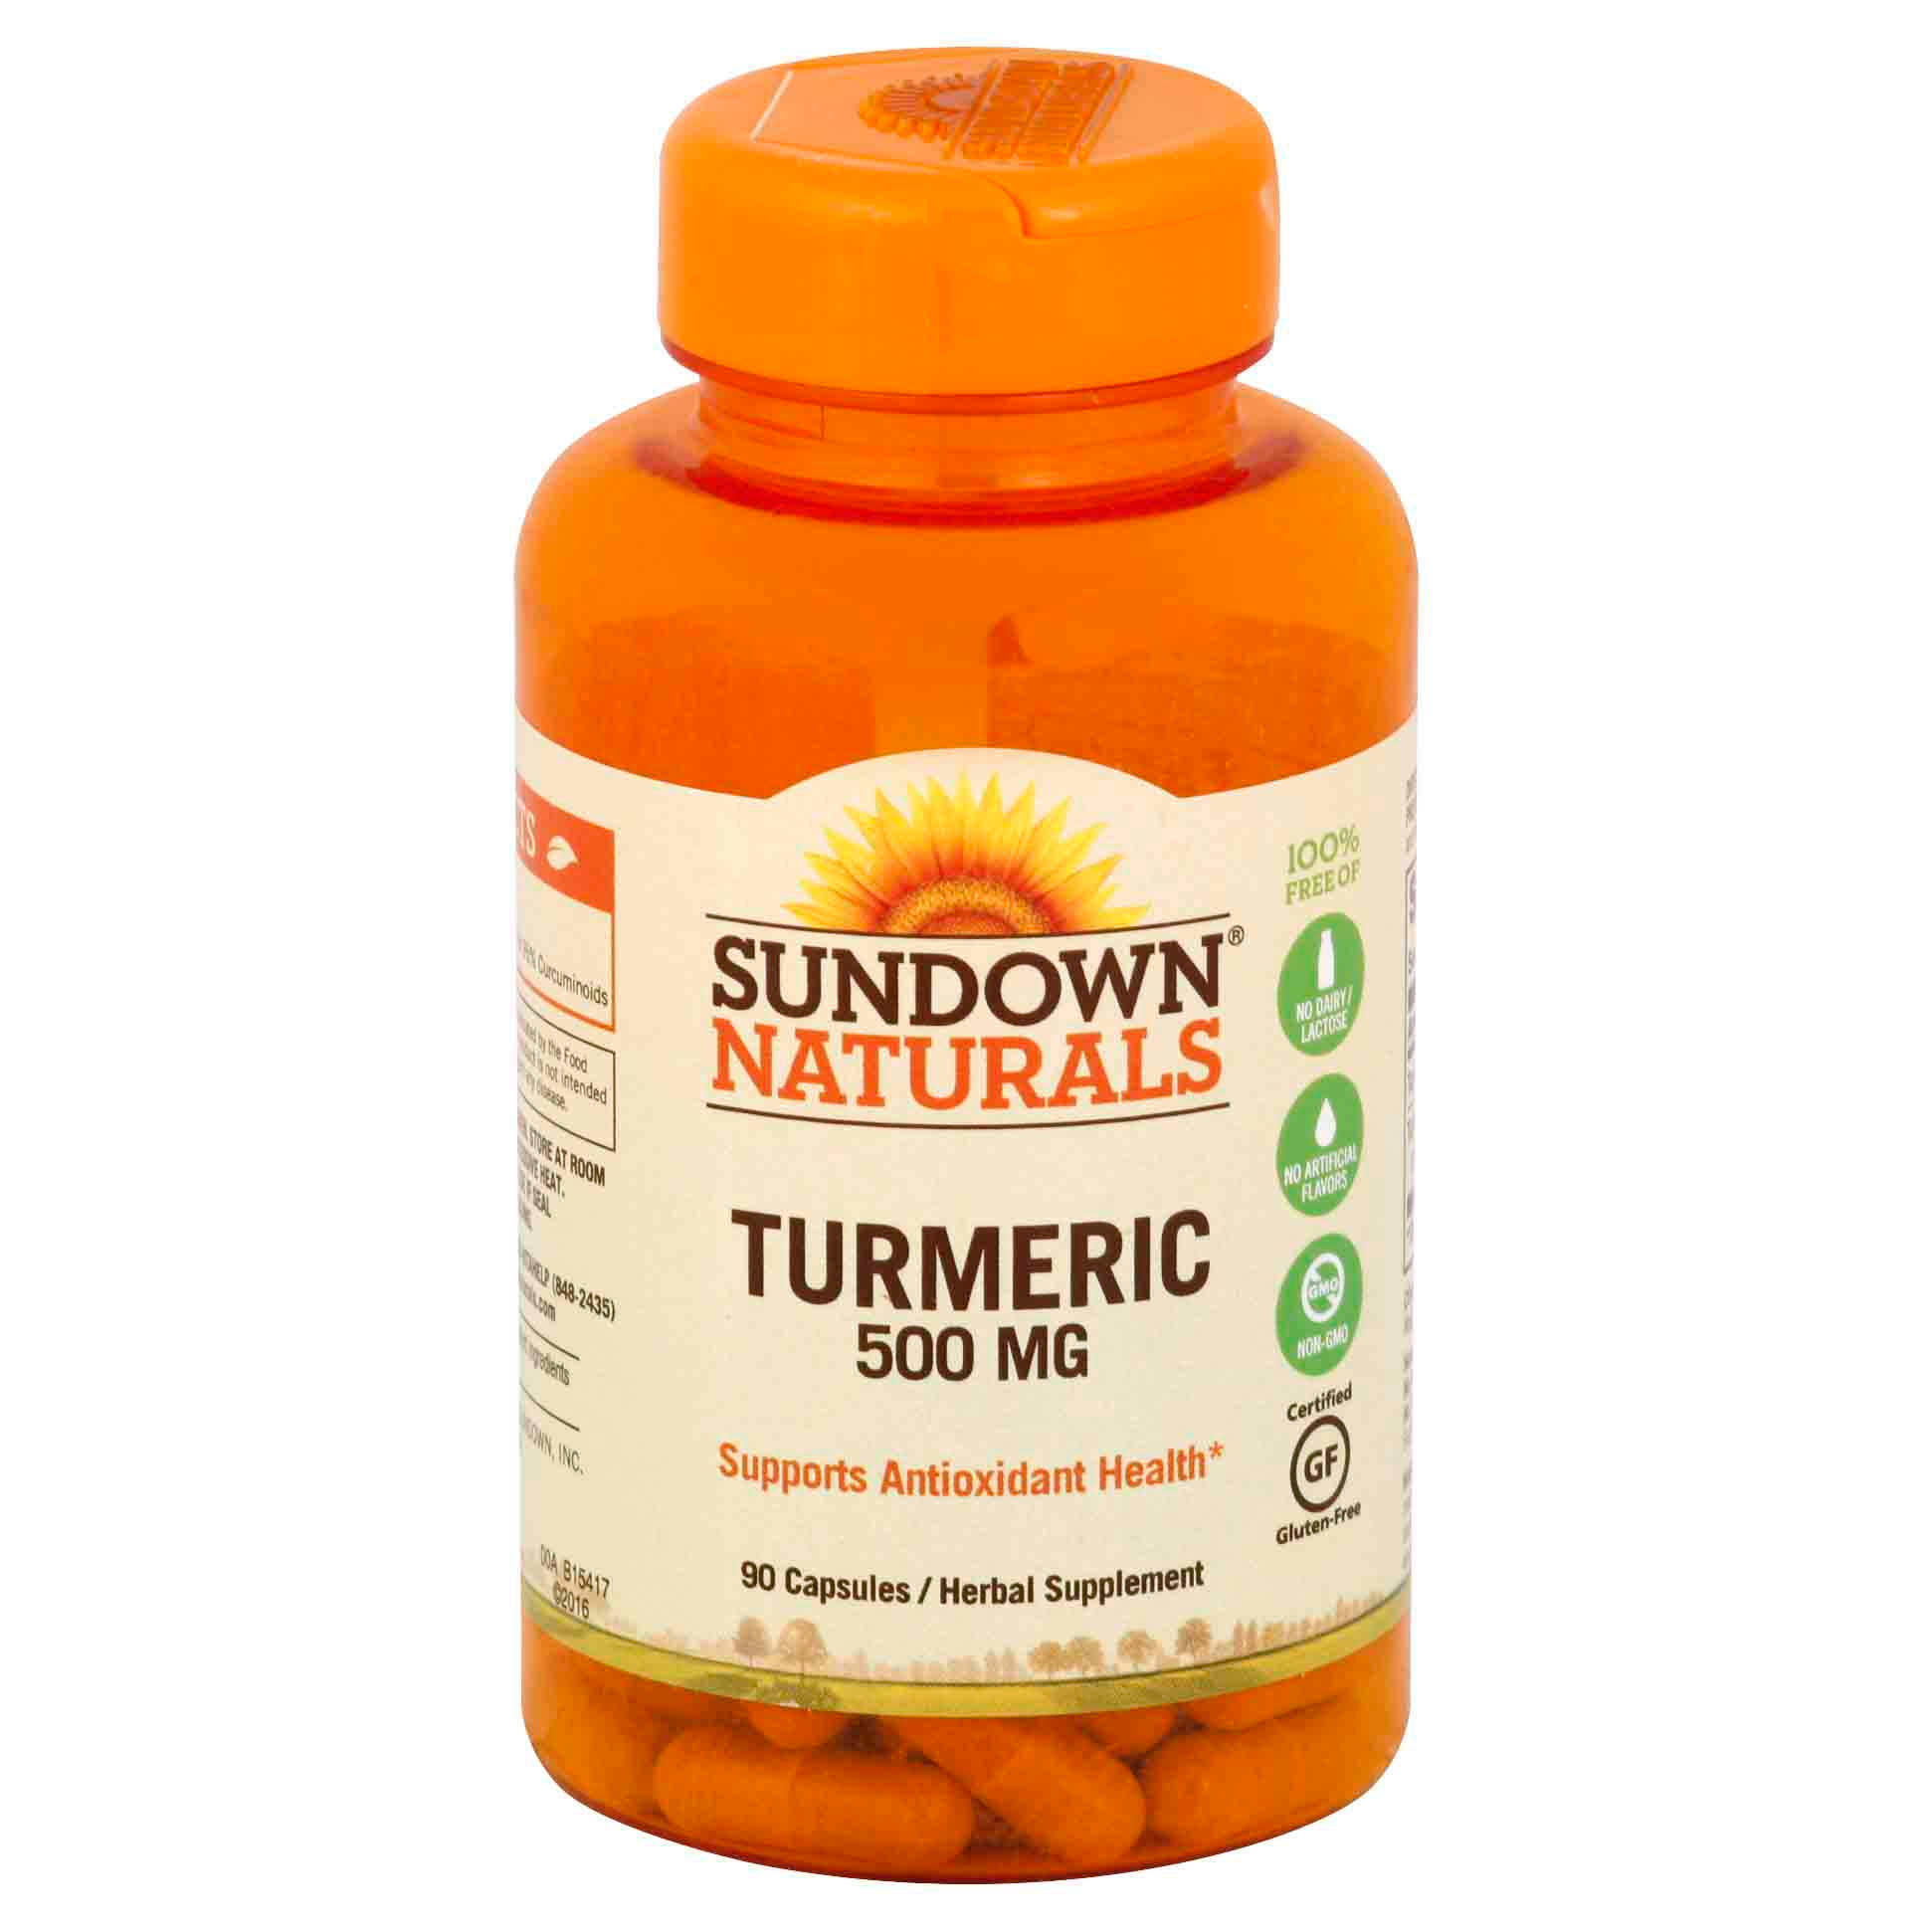 Sundown Naturals Turmeric Extract - 450mg, 90 Capsules